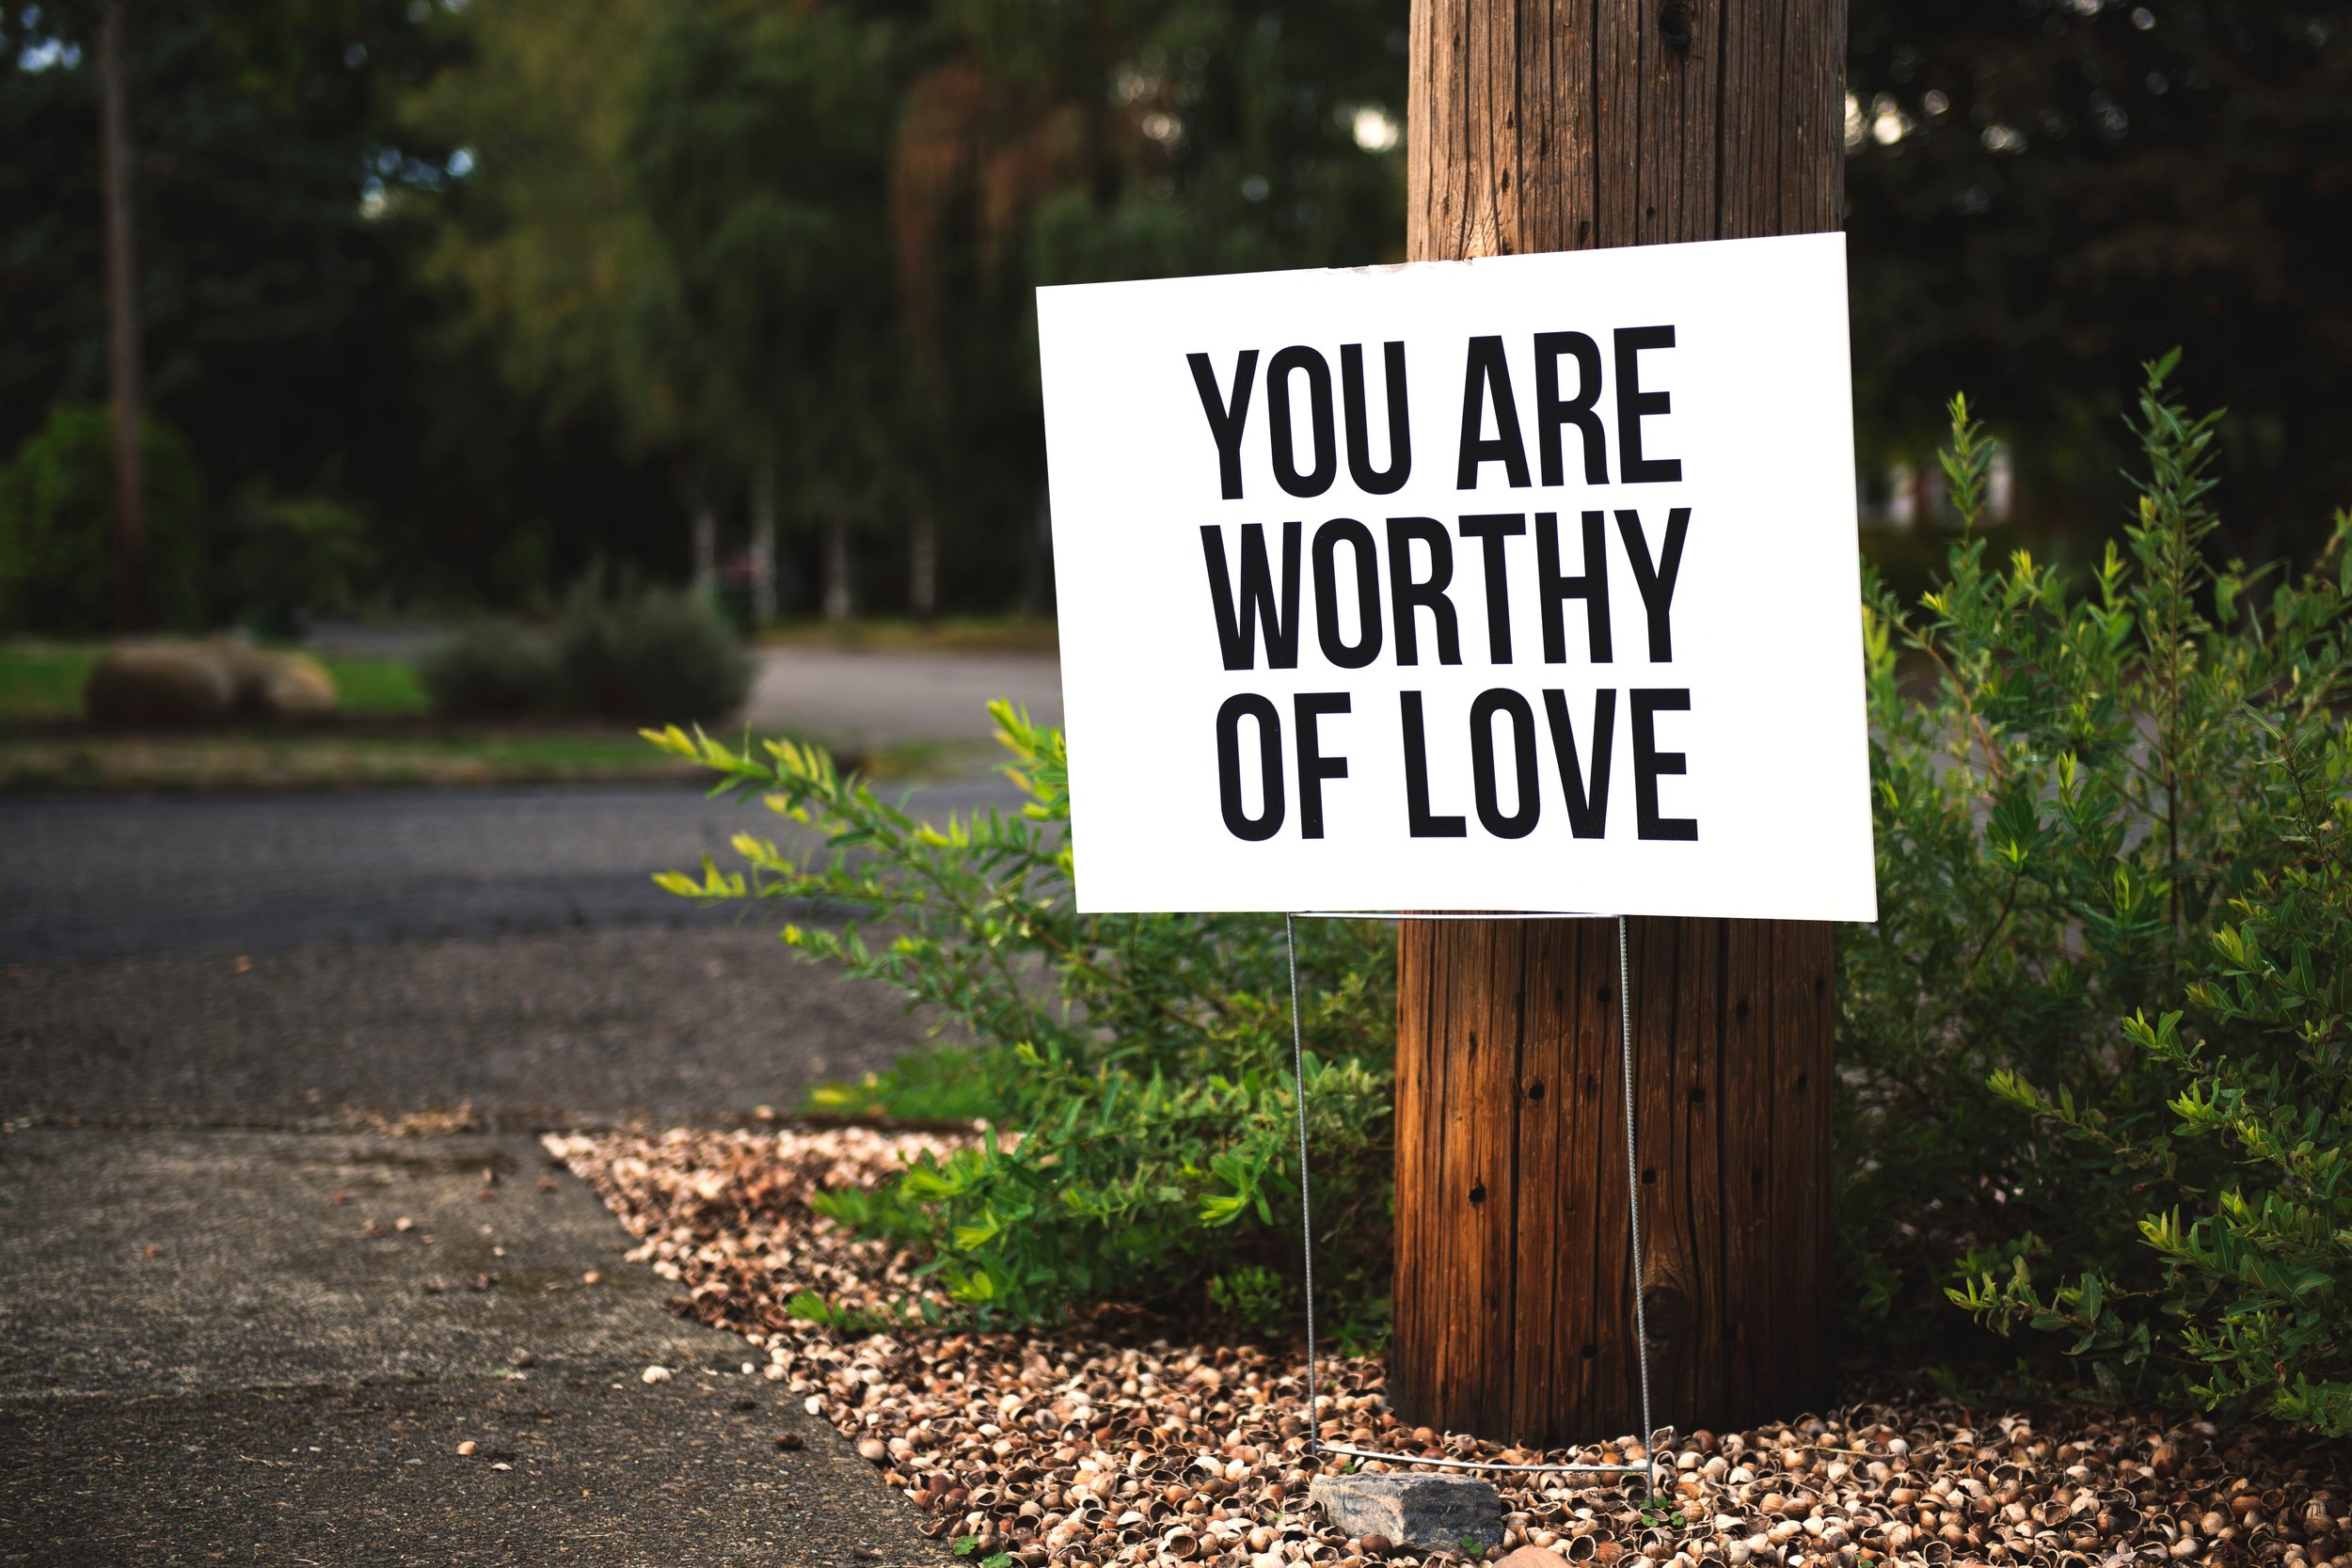 You are worthy of love - how to stop negative self talk and retrain your brain towards kindness.